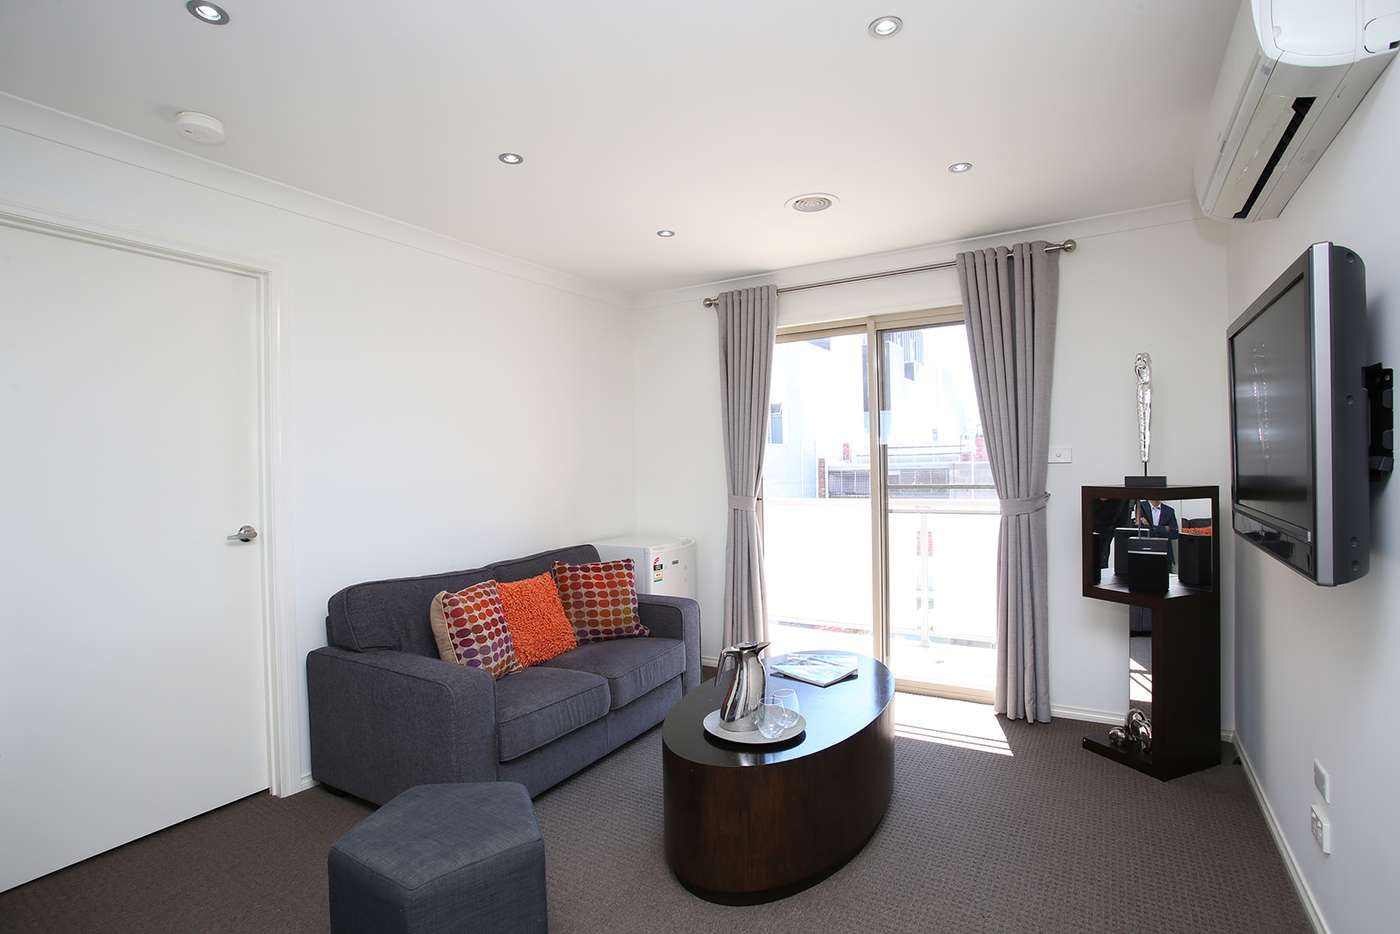 Sixth view of Homely apartment listing, 2/24 Dunlop Avenue, Ormond VIC 3204